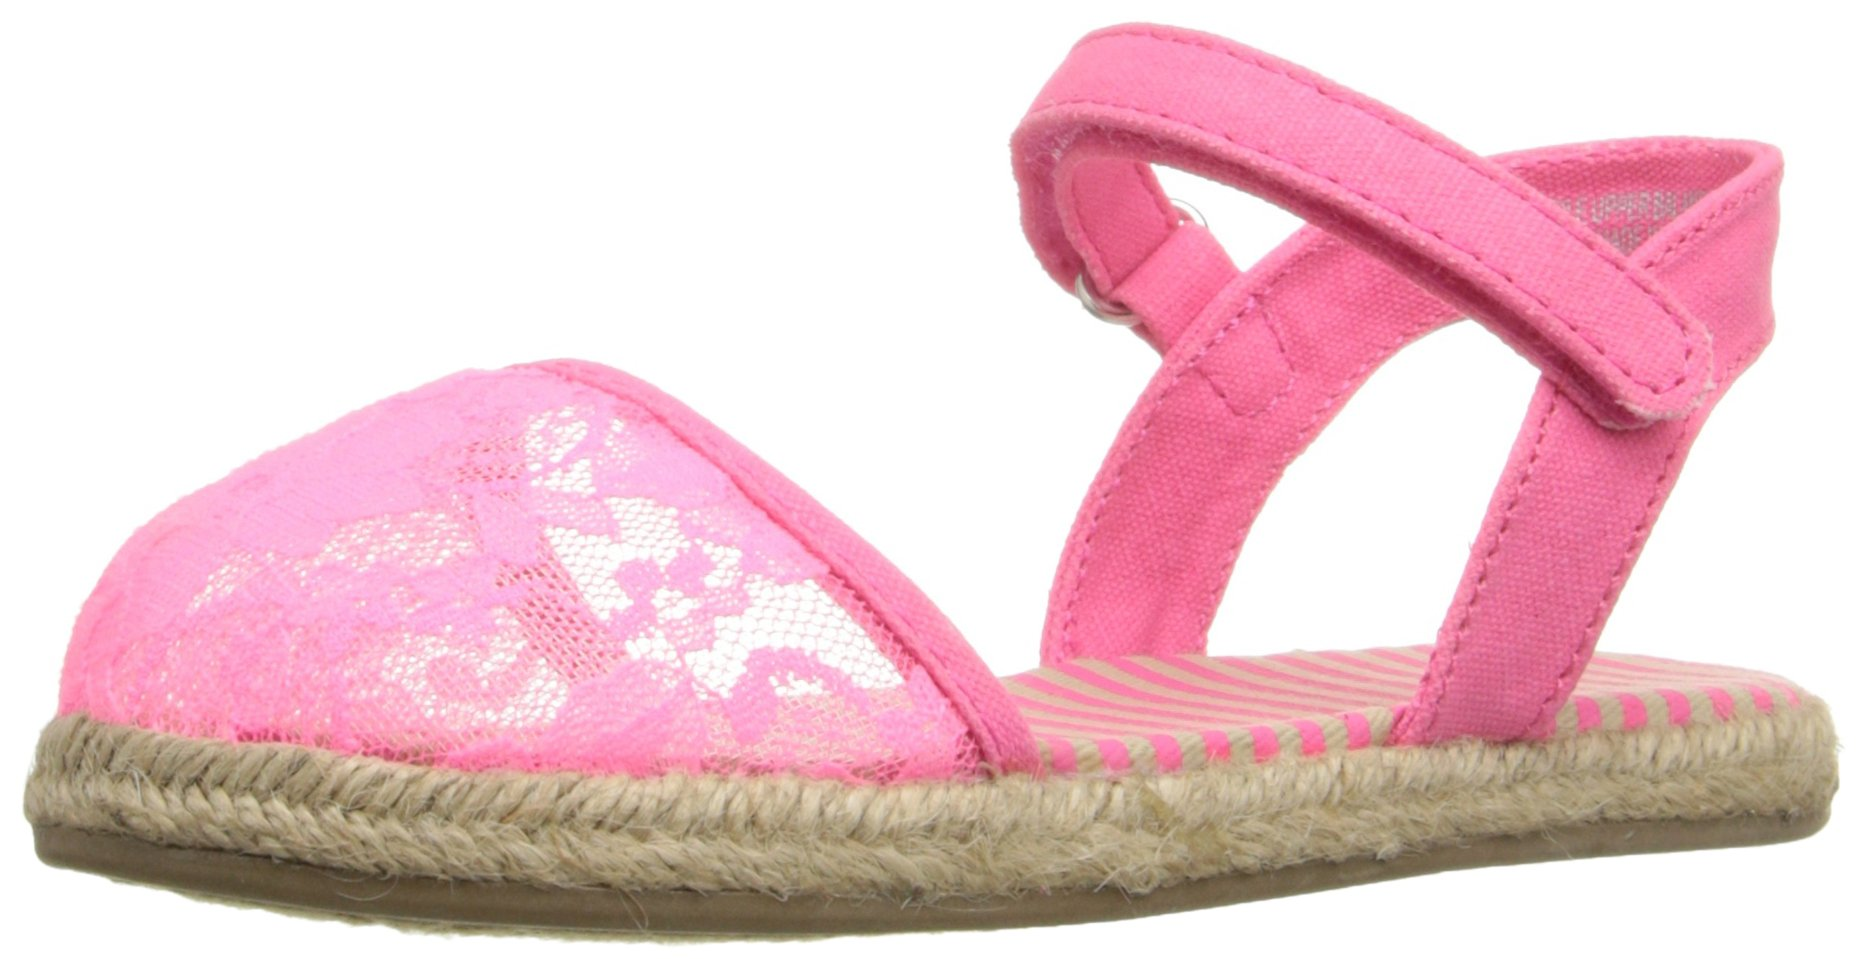 The Children's Place Lily Casual Toe Cap Meadow Flat (Toddler/Little Kid), Pink, 4 M US Toddler